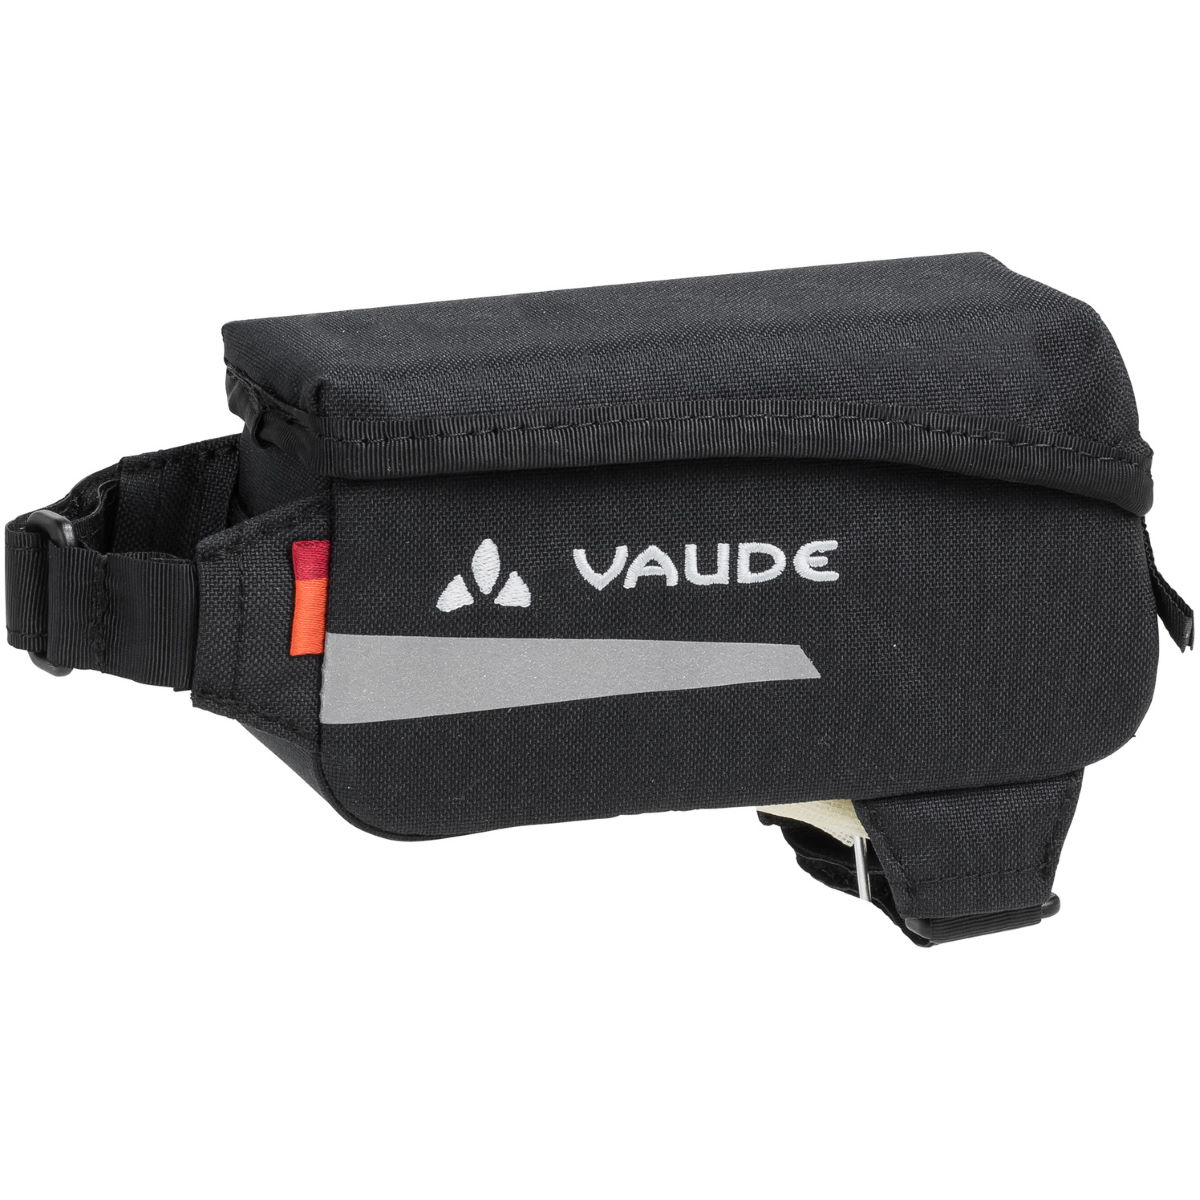 Vaude Carbo Frame Bag - One Size Black  Top Tube Bags